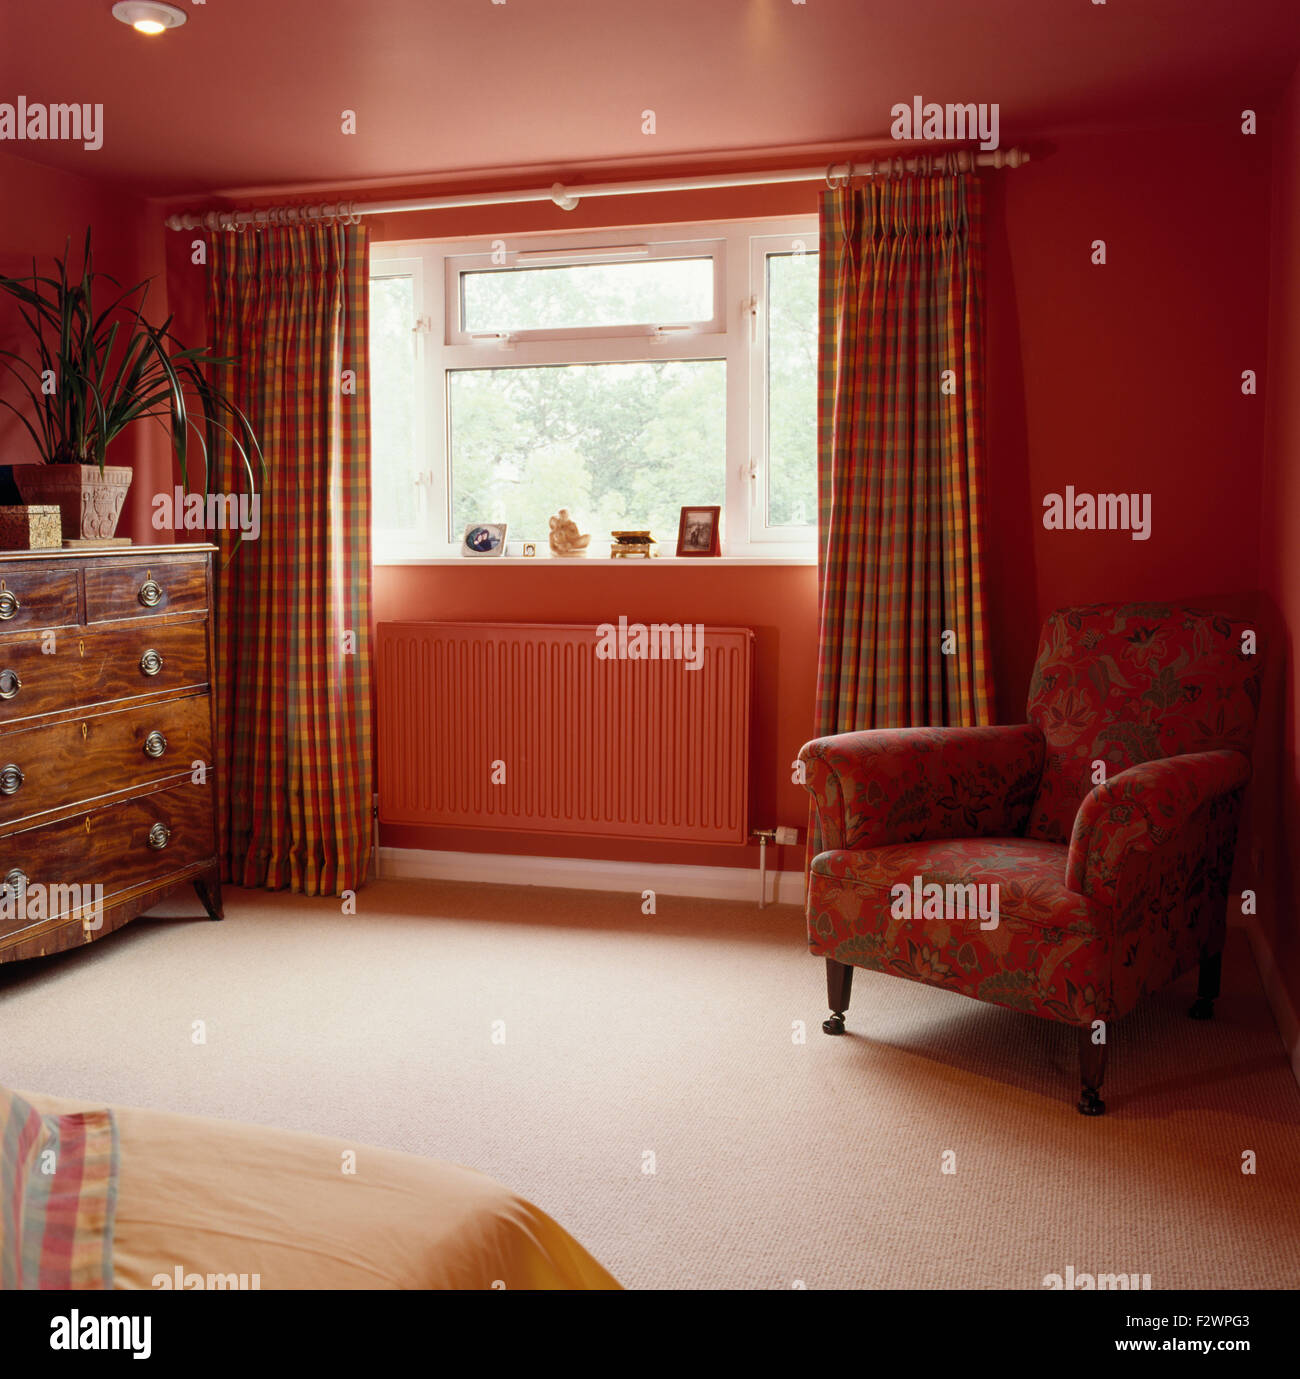 Checked Curtains On Window Above Painted Radiator In Red Nineties Stock Photo Alamy